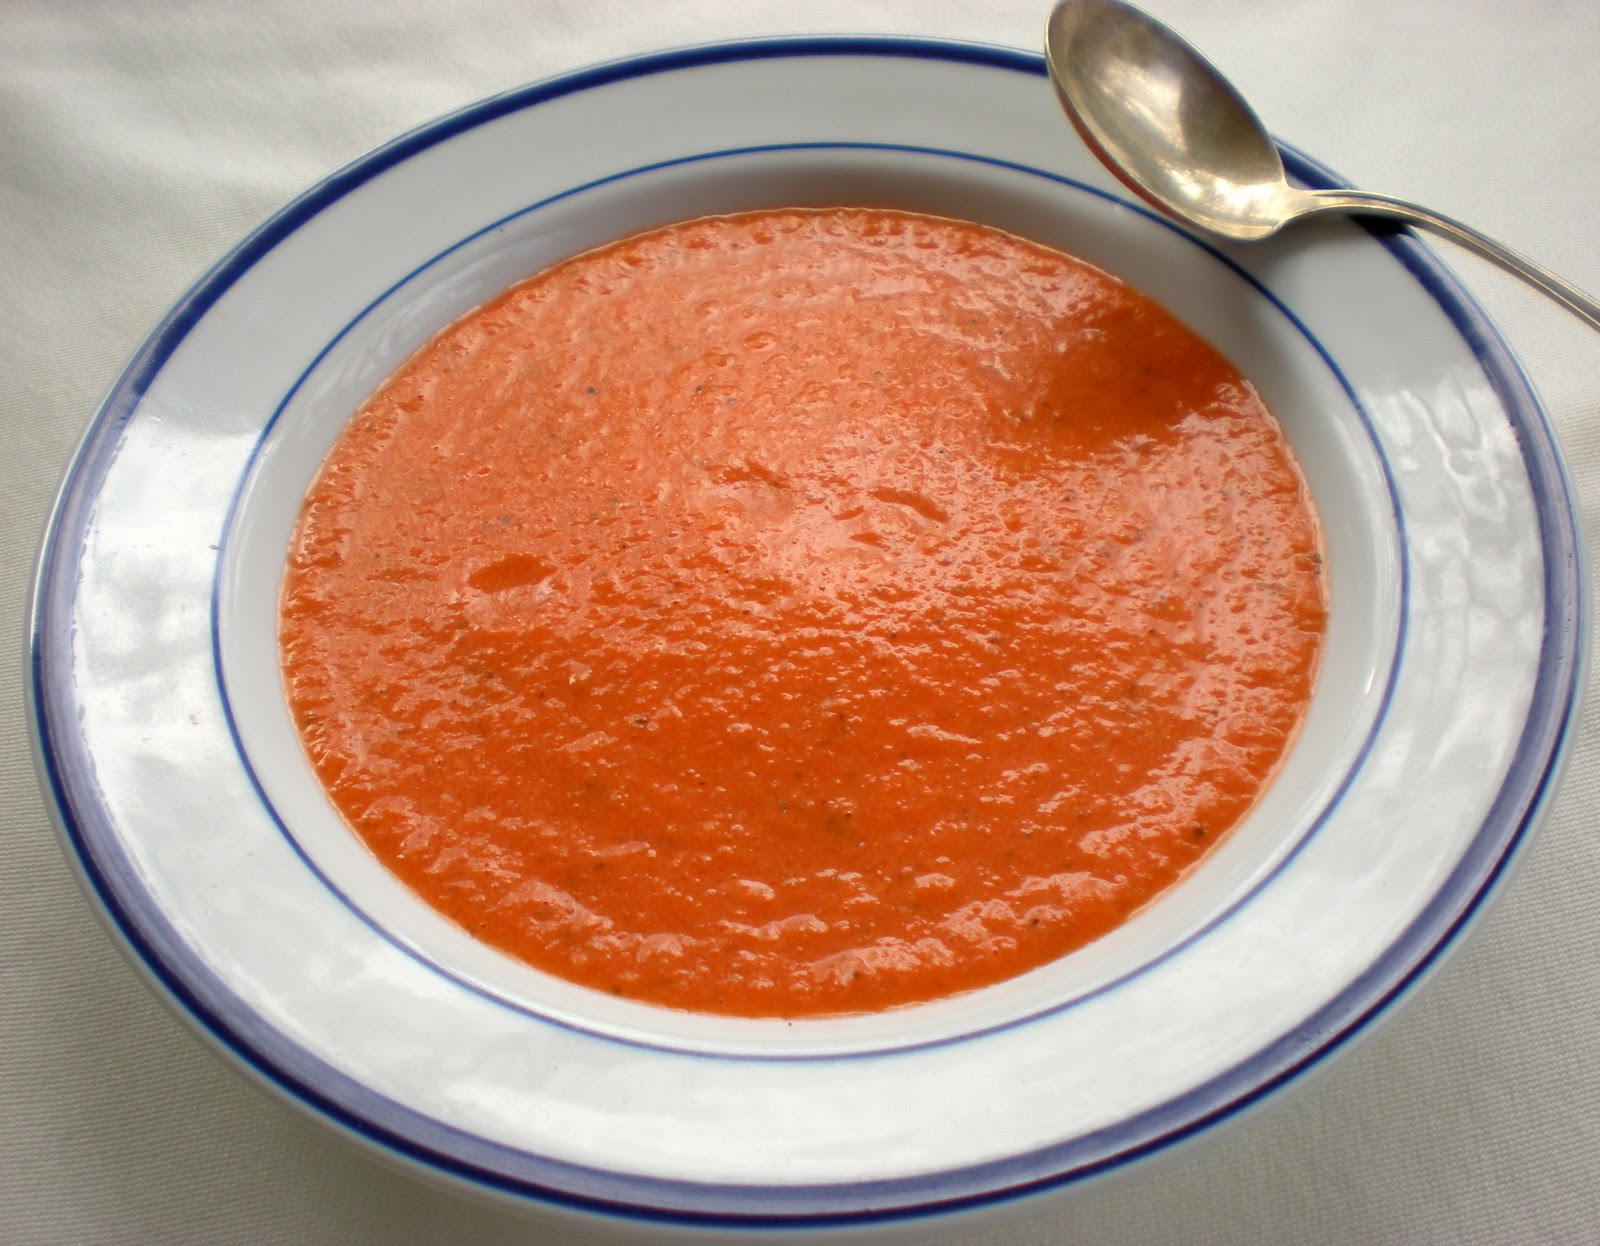 Tomato soup by Lucy Mercer/A Cook and Her Books